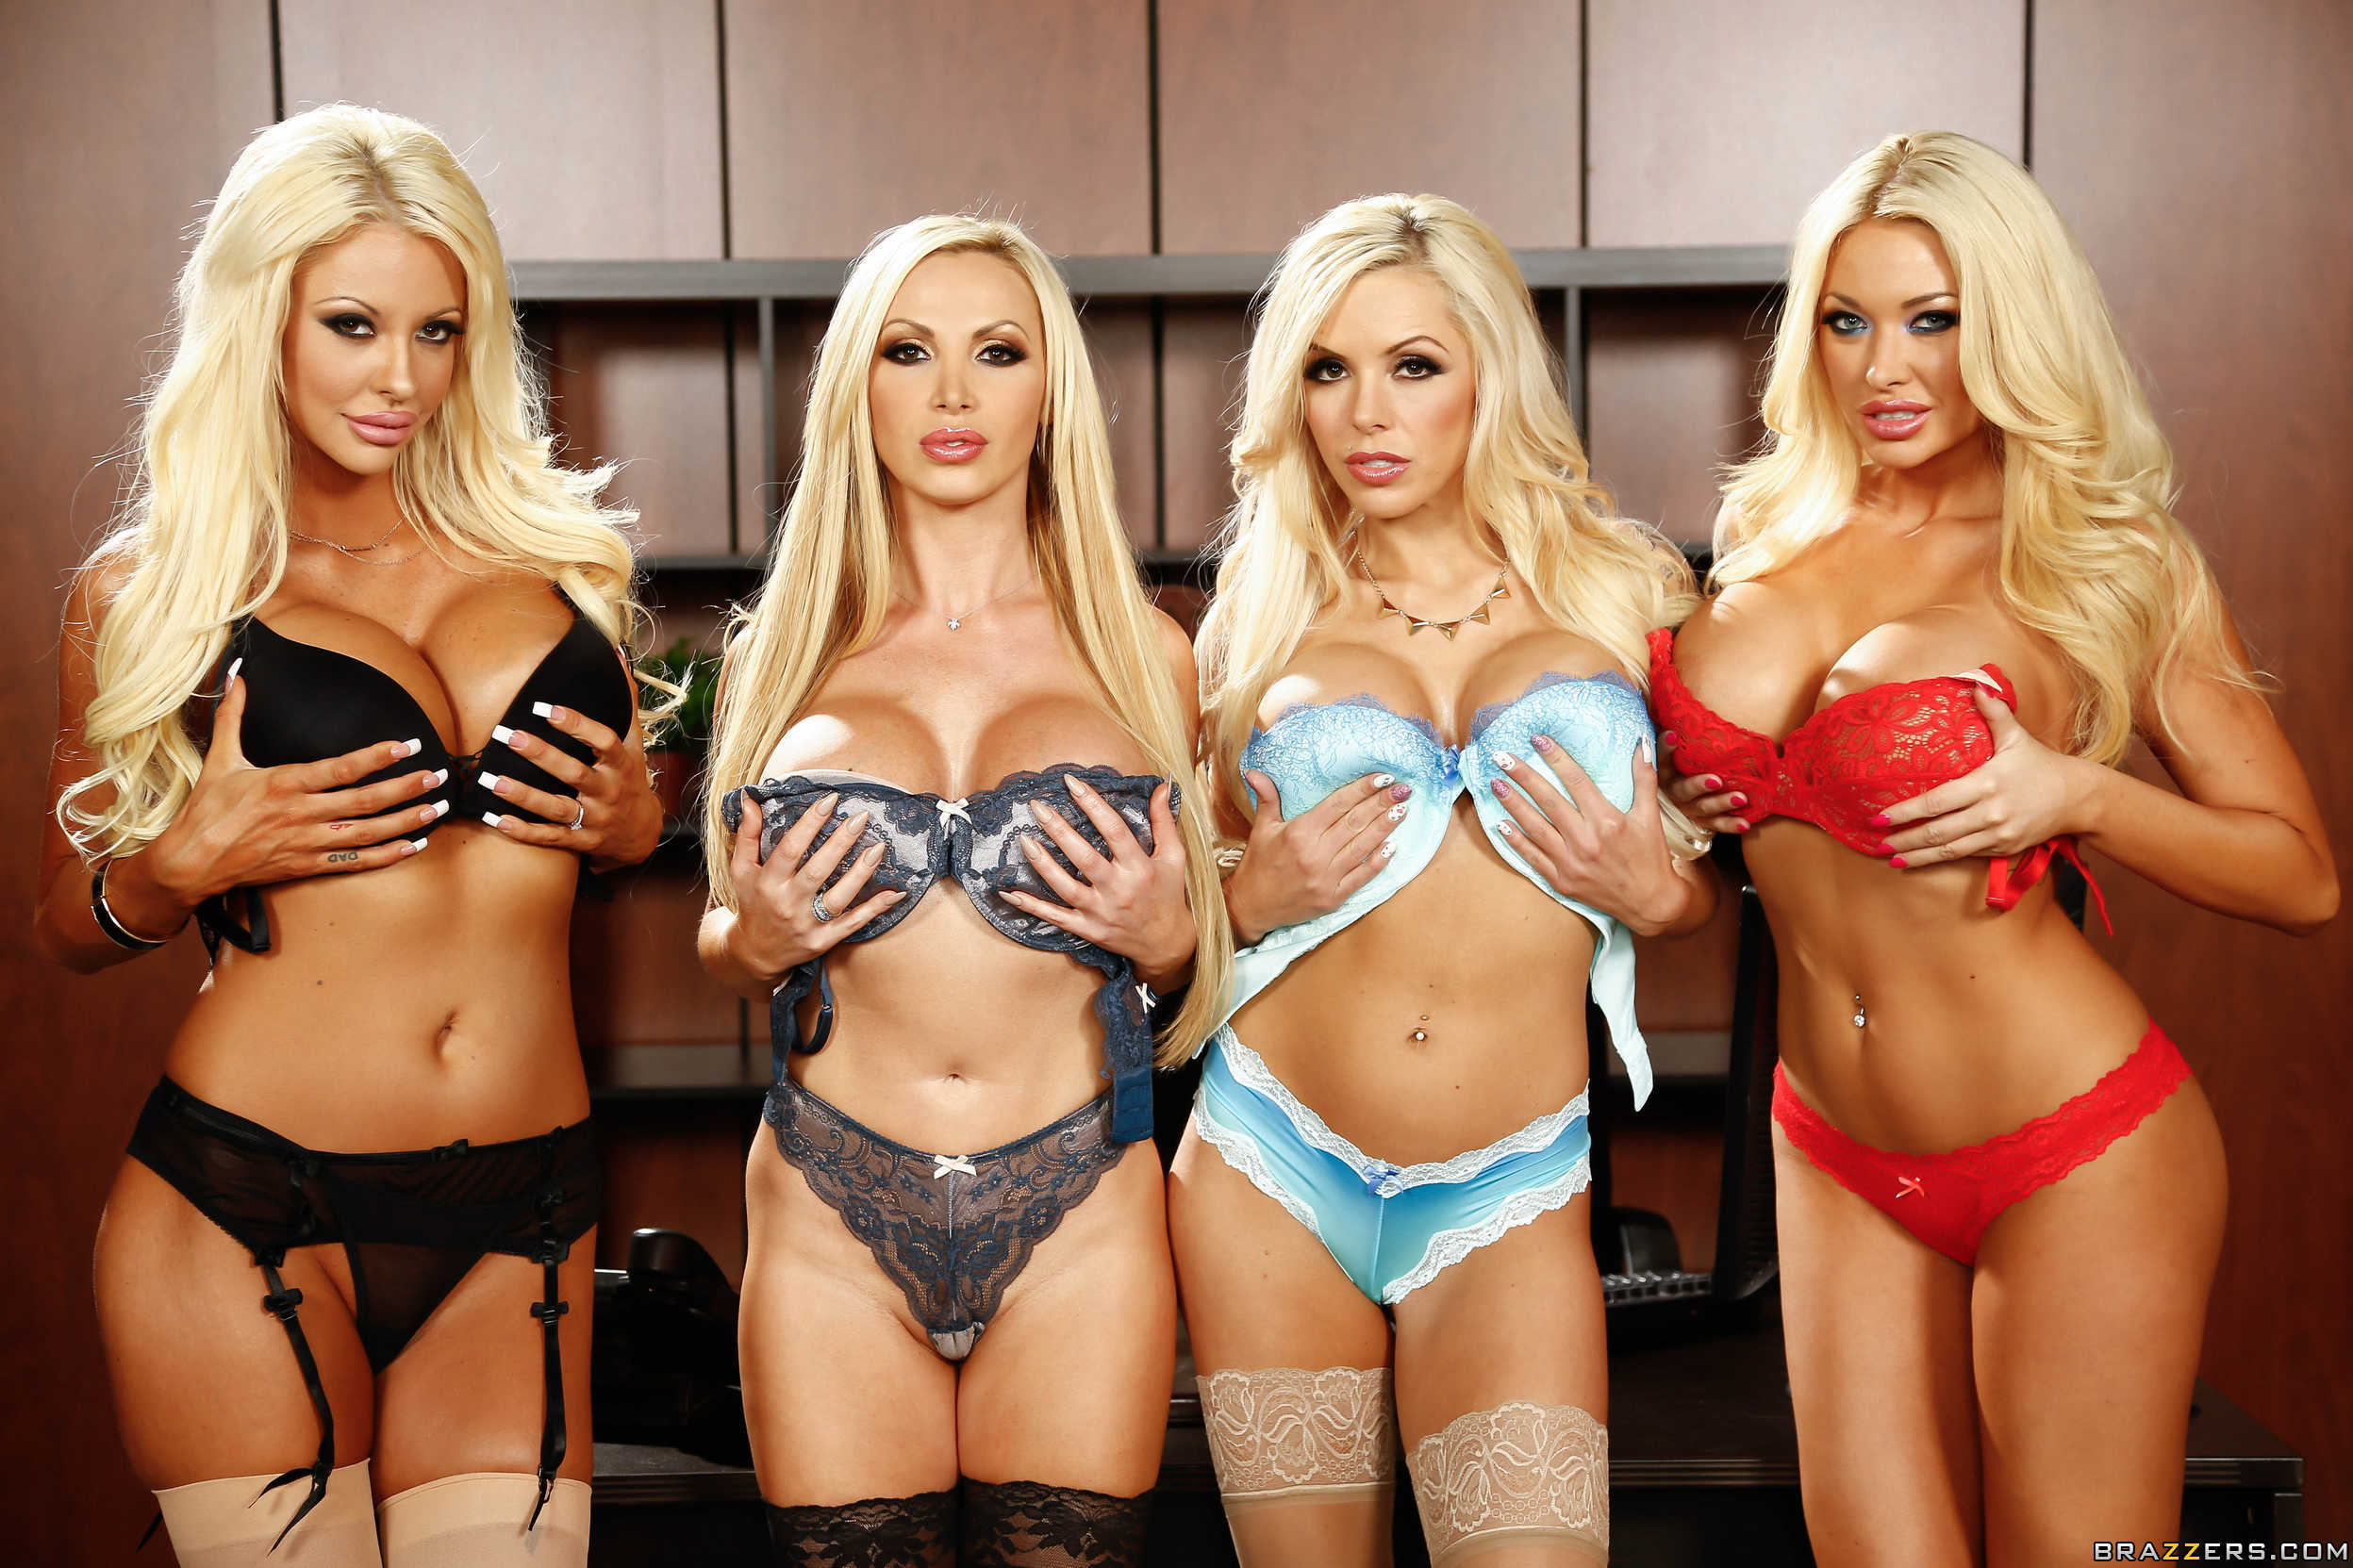 Courtney Taylor, Nikki Benz, Nina Elle, Summer Brielle office 4 blondes orgy 10